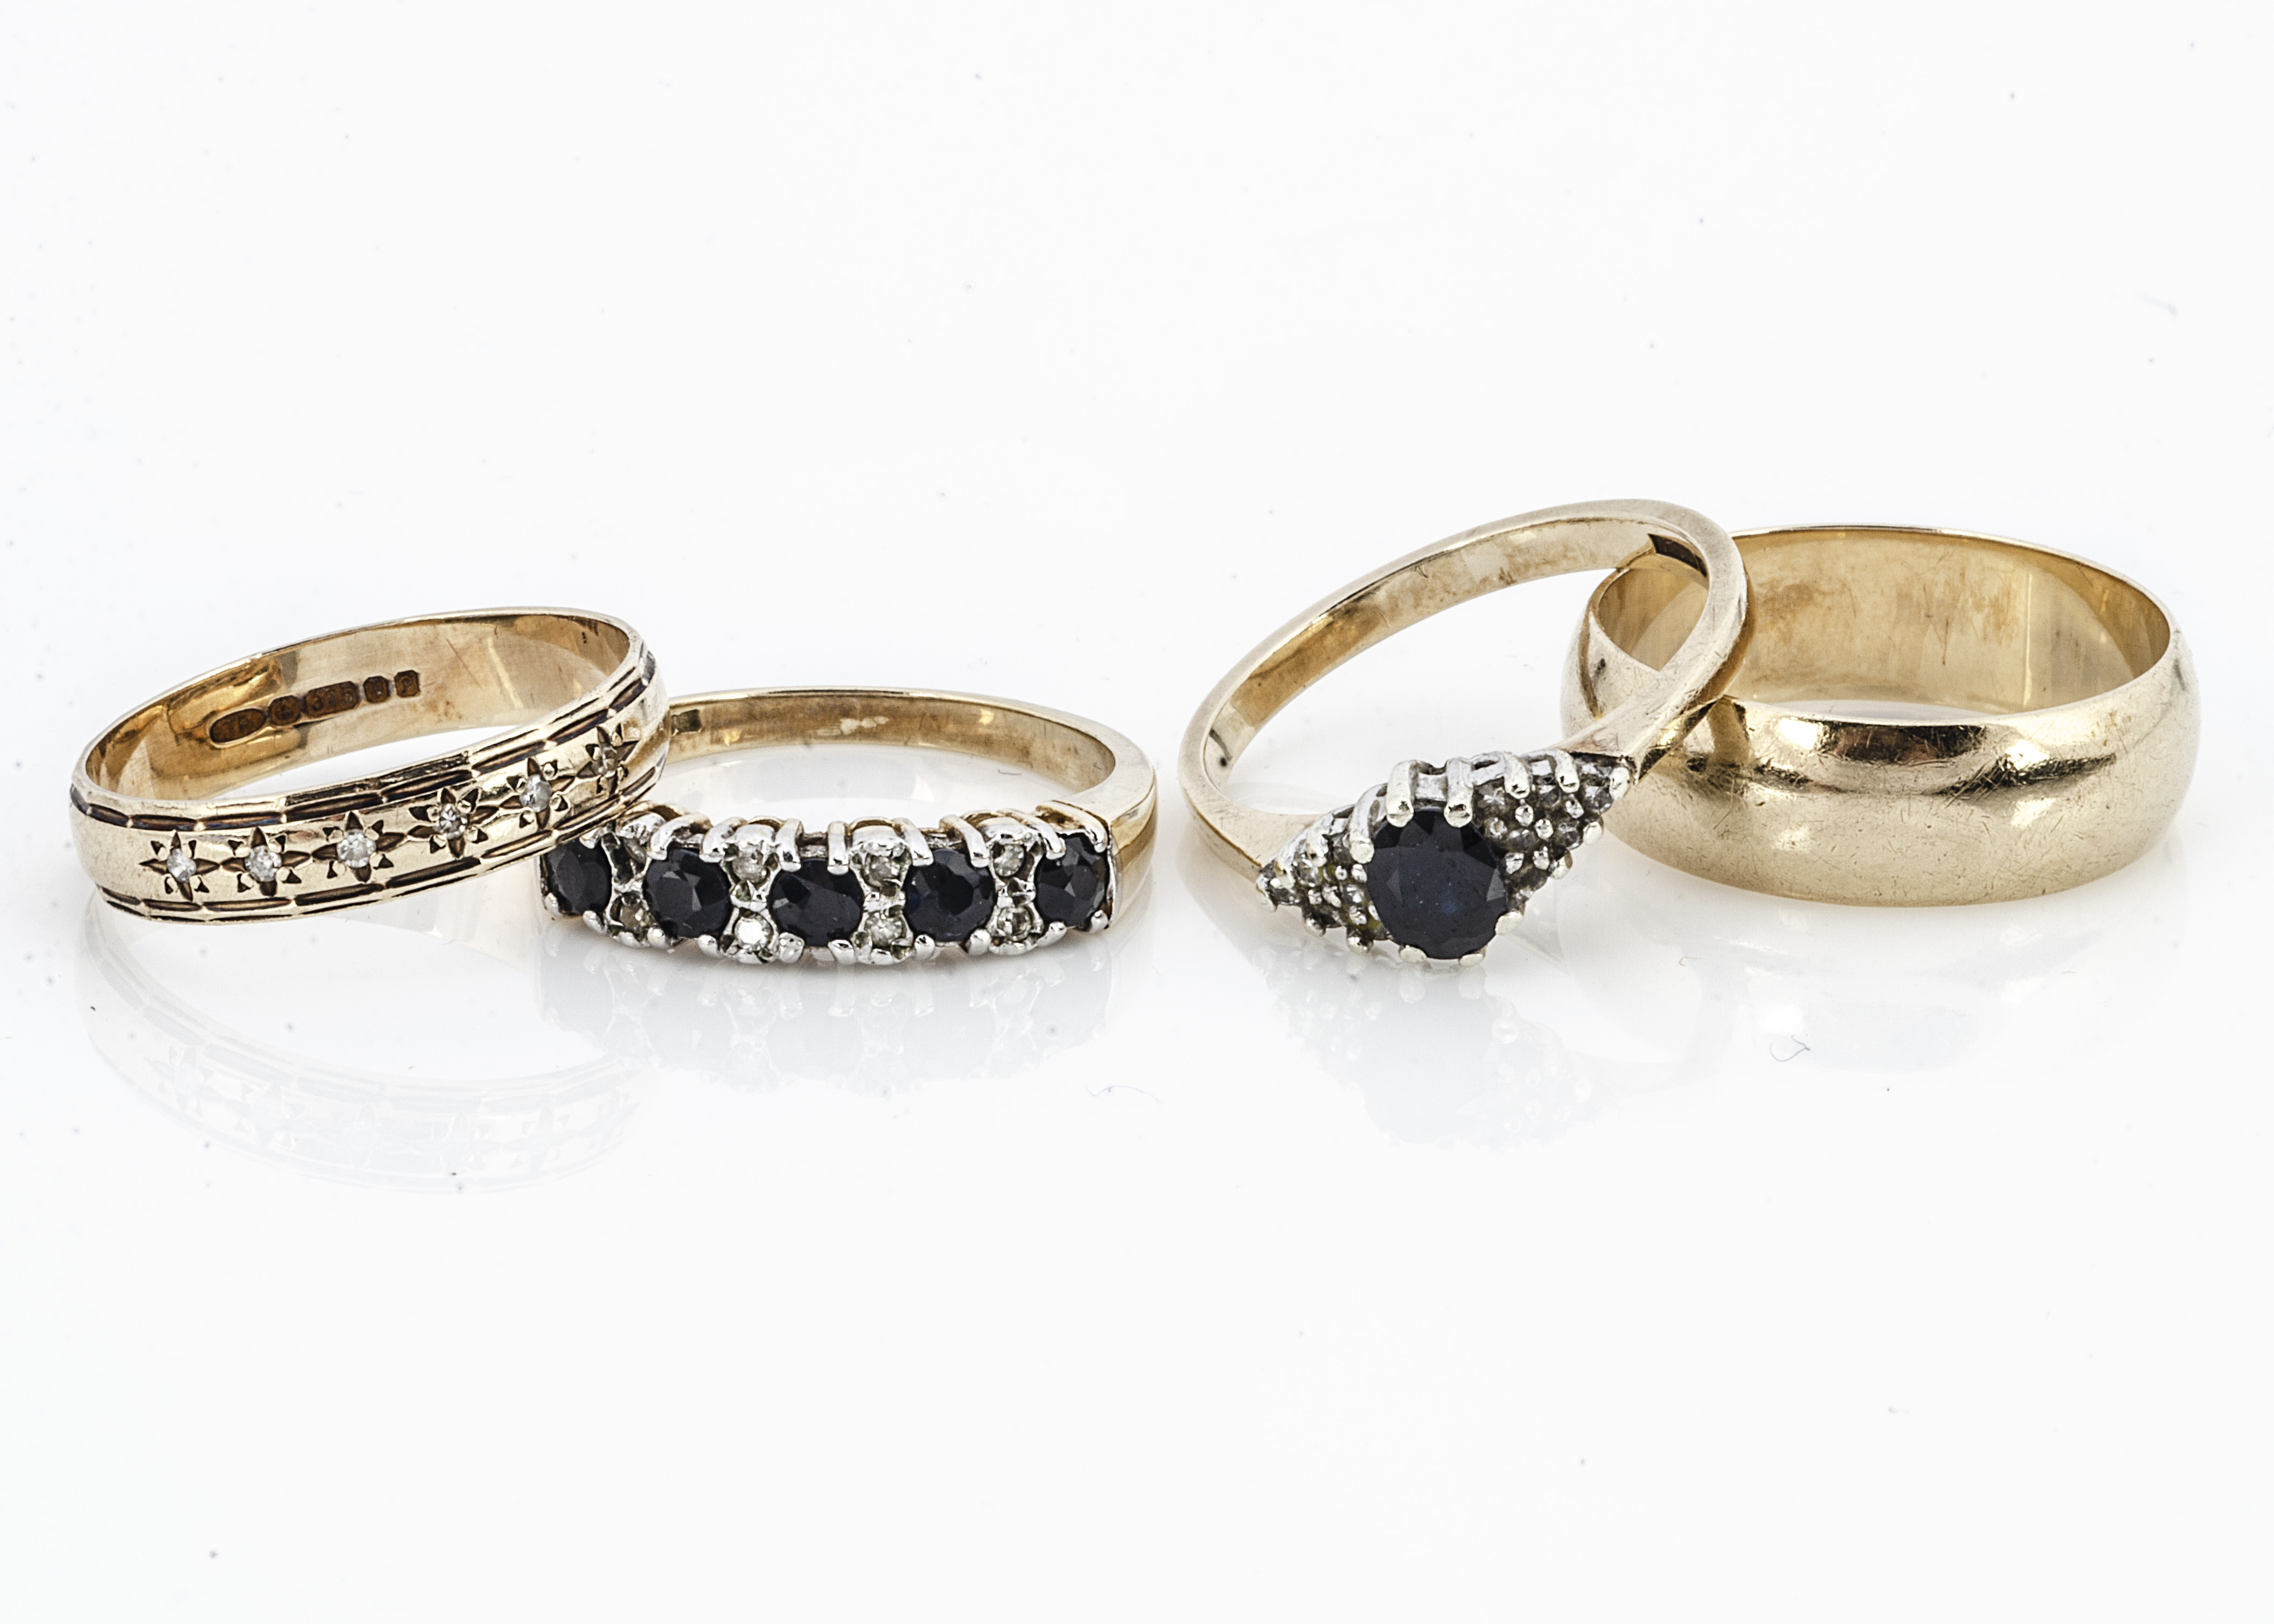 Four 9ct gold rings, two wedding bands one of curved plain form, ring size O, the other set with